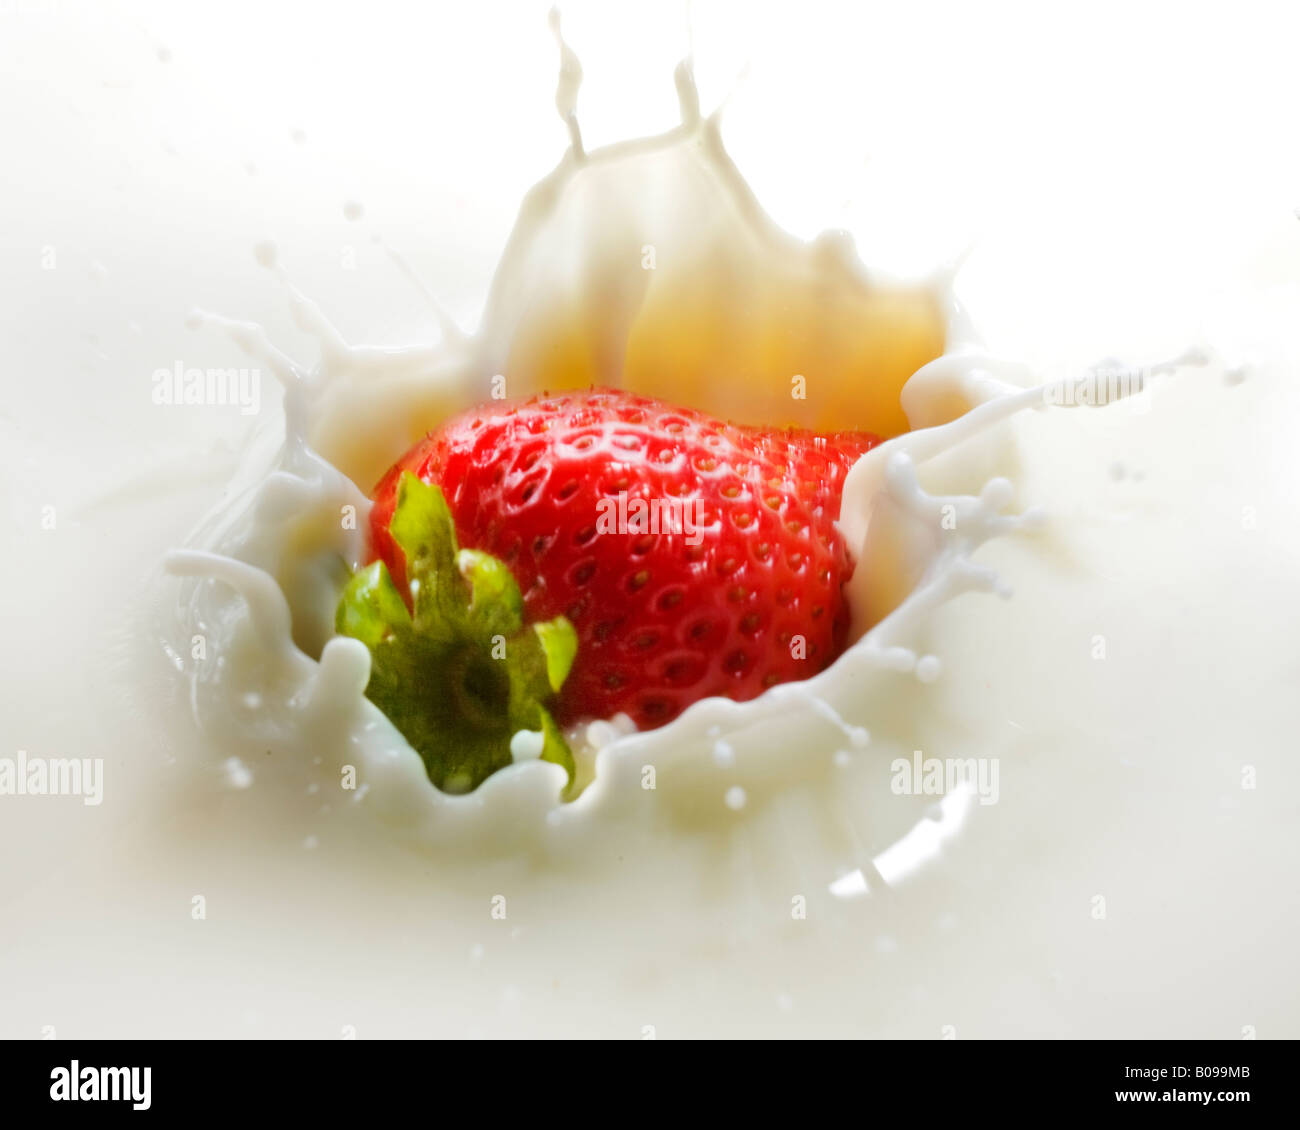 A red strawberry splashing into a creamy substance. - Stock Image